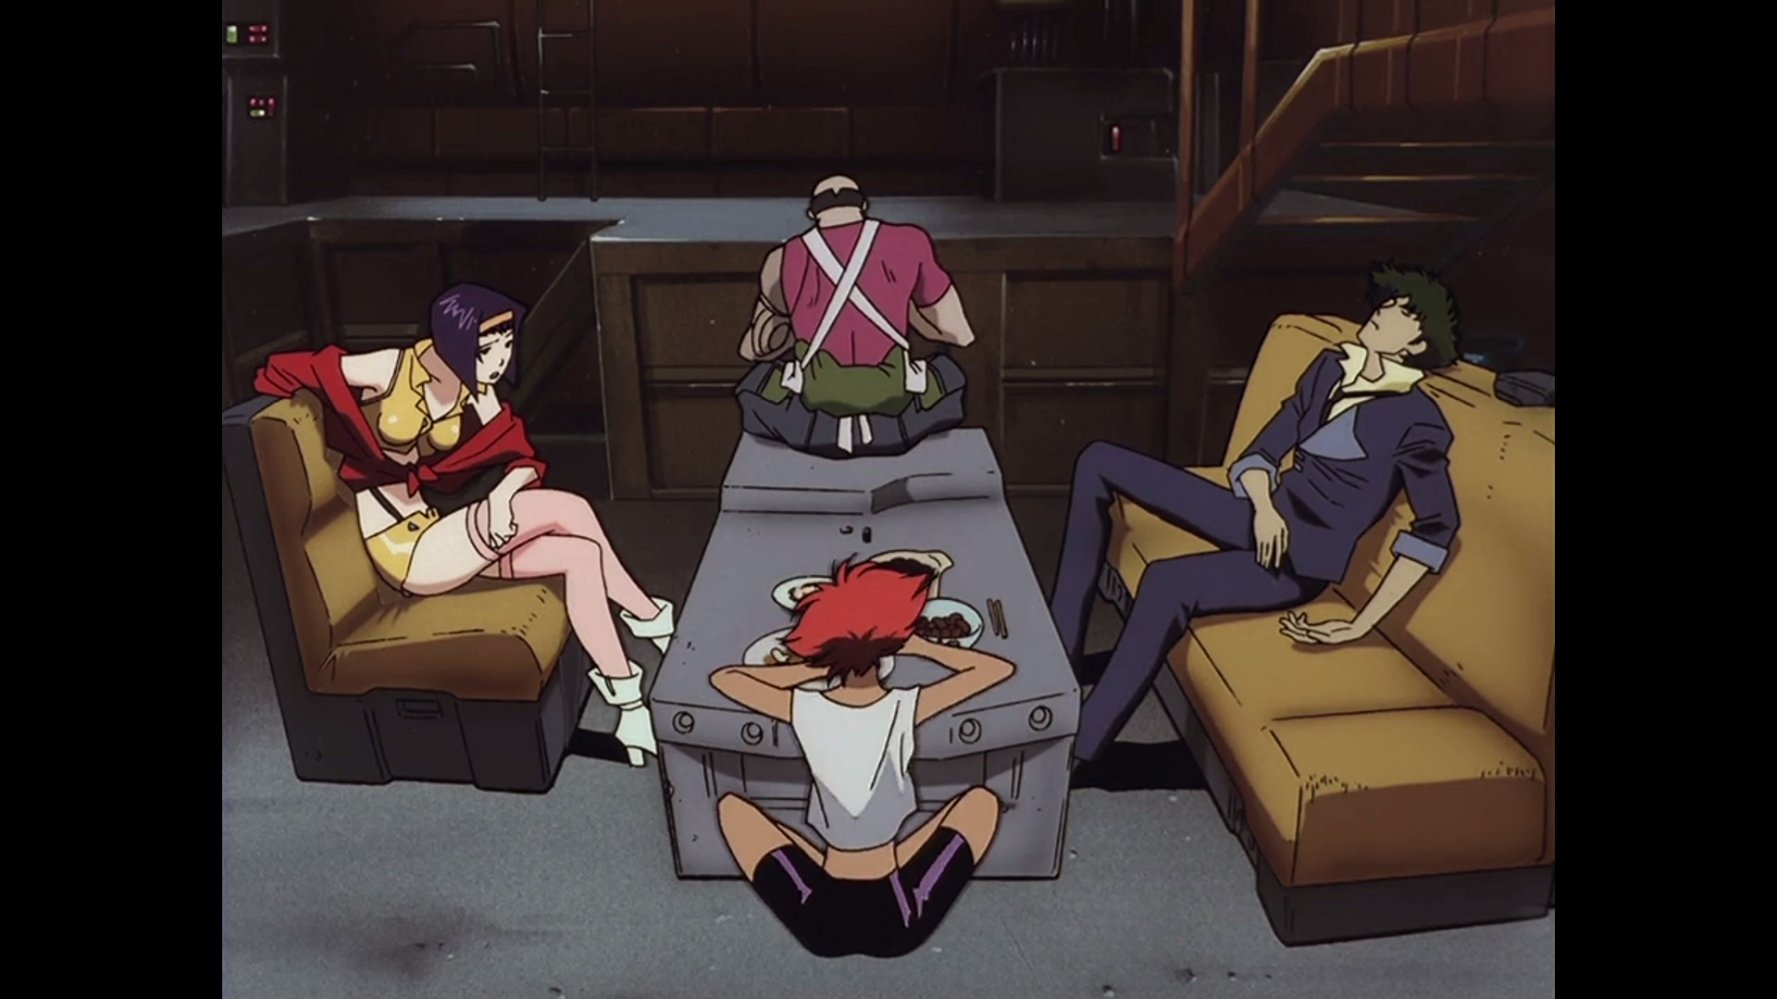 Cowboy Bebop full movie hd 1080p download